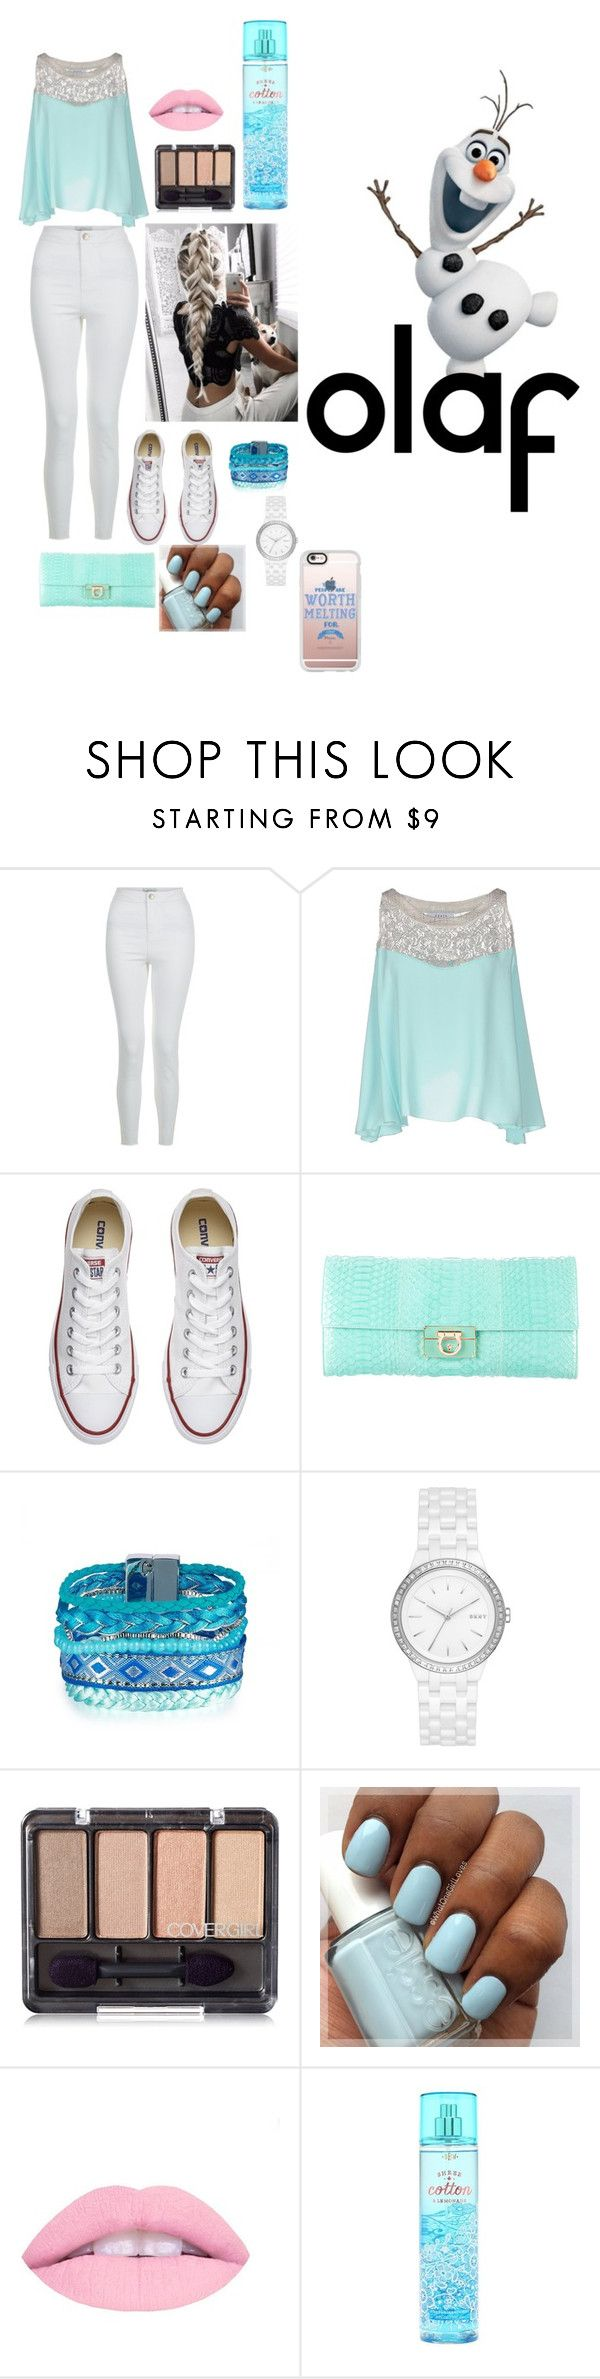 """""""Olaf-Disneybound"""" by chelseafullerton ❤ liked on Polyvore featuring New Look, Axara, Disney, Converse, Salvatore Ferragamo, DKNY and Casetify"""